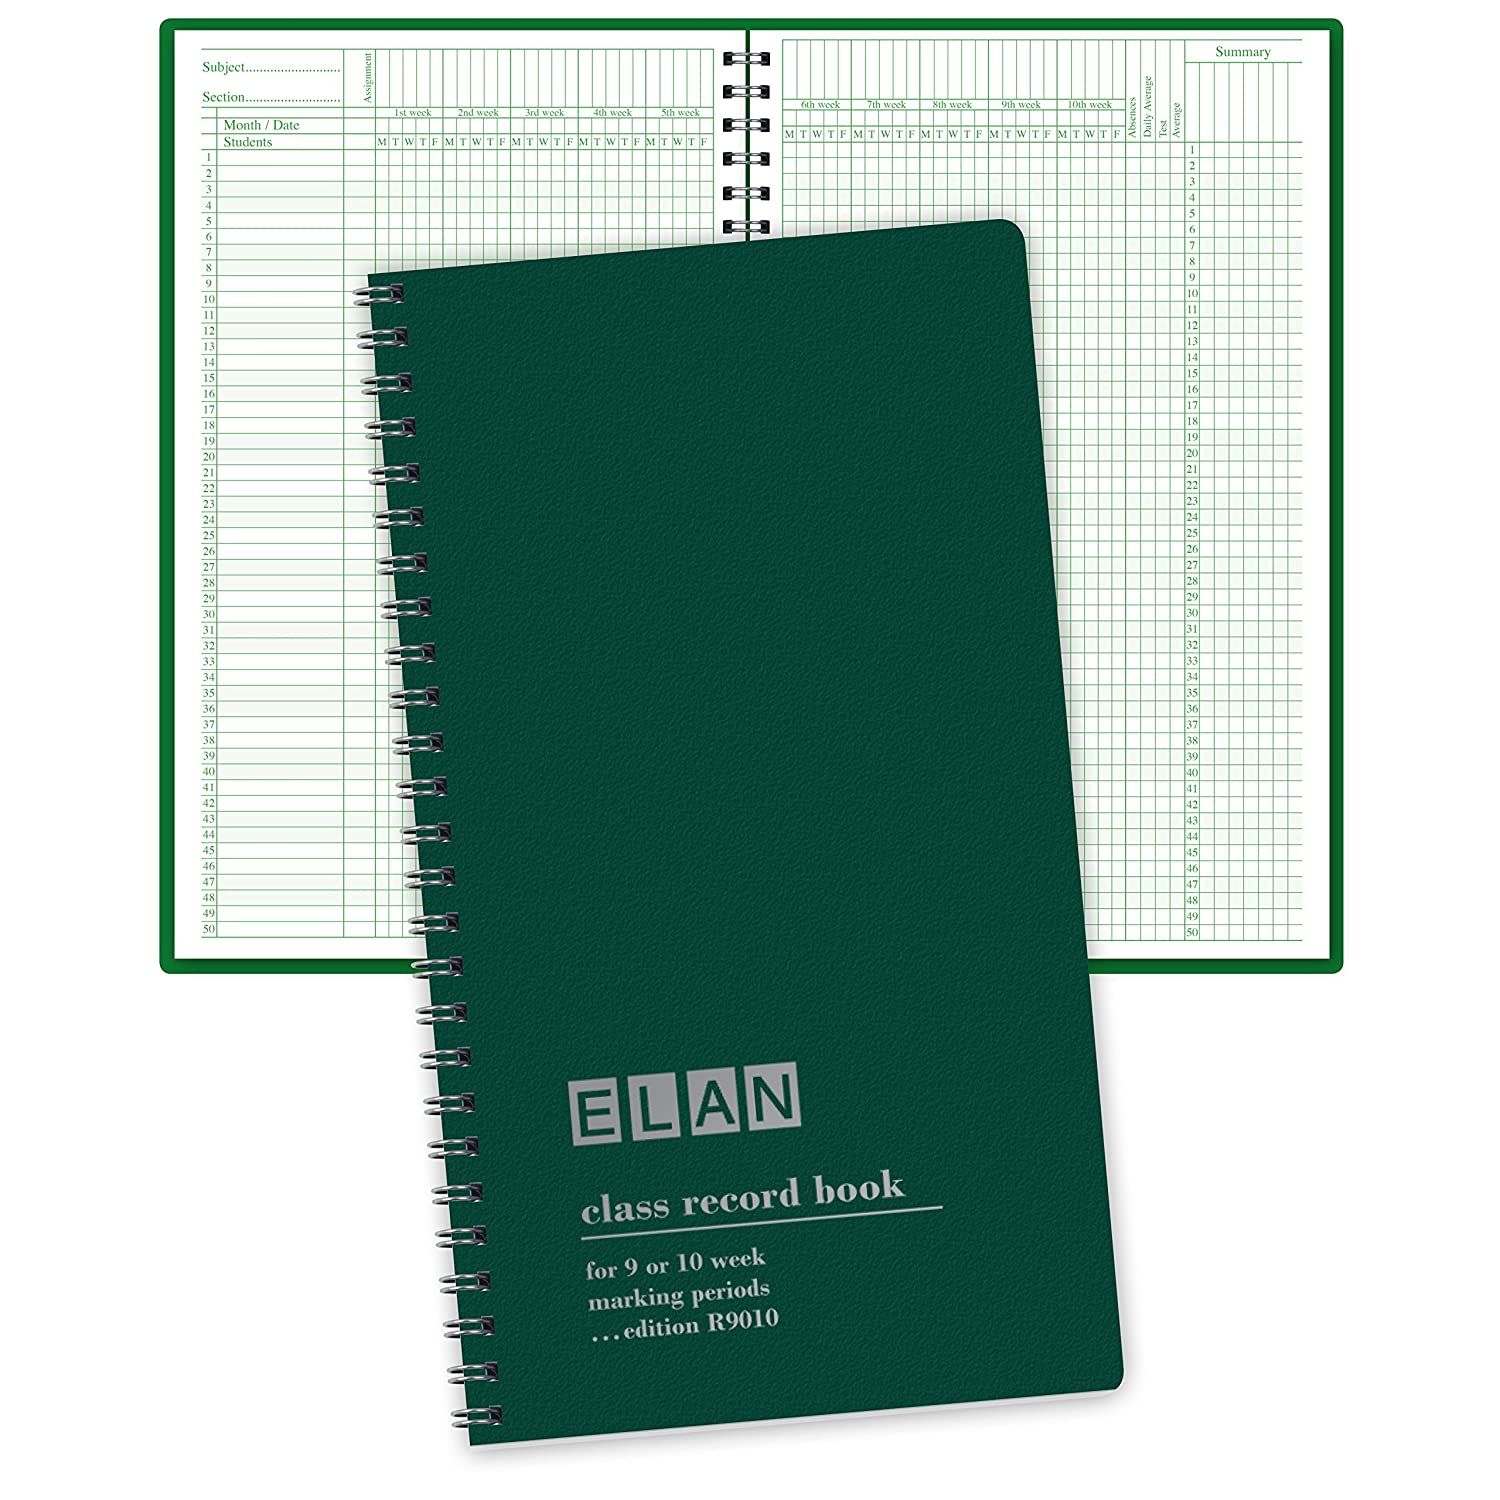 Class Record Book for 9-10 Weeks. 50 Names. Smaller Size 7